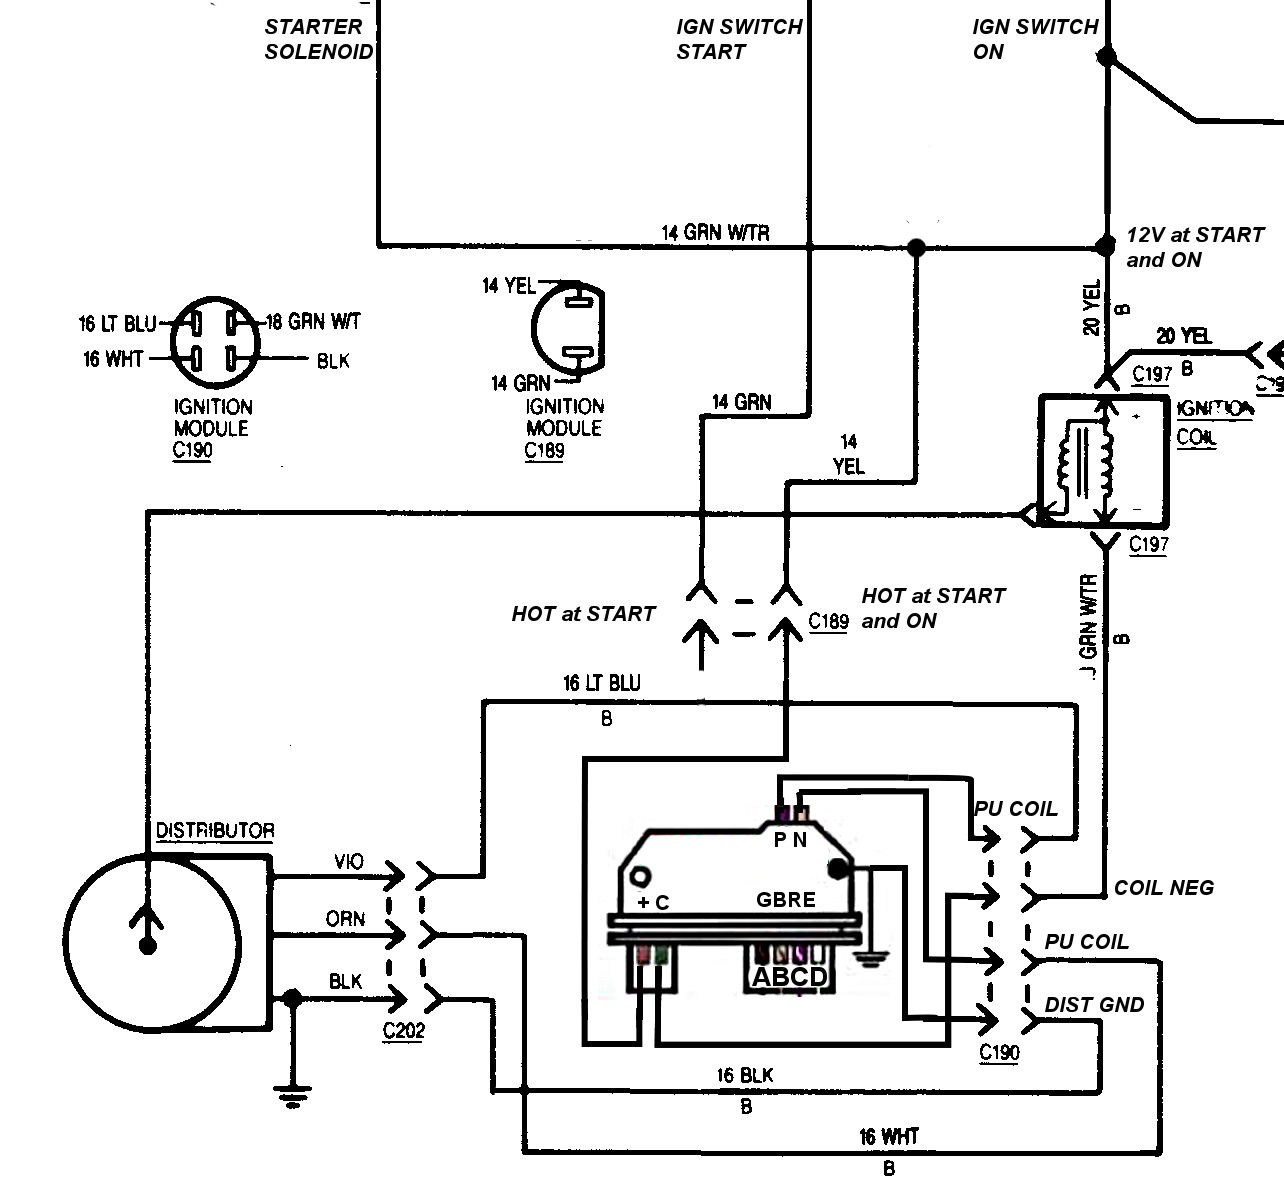 TBI+Wiring+1 simple ignition wiring diagram john deere wiring schematic \u2022 free Chevy Truck Wiring Diagram at cos-gaming.co